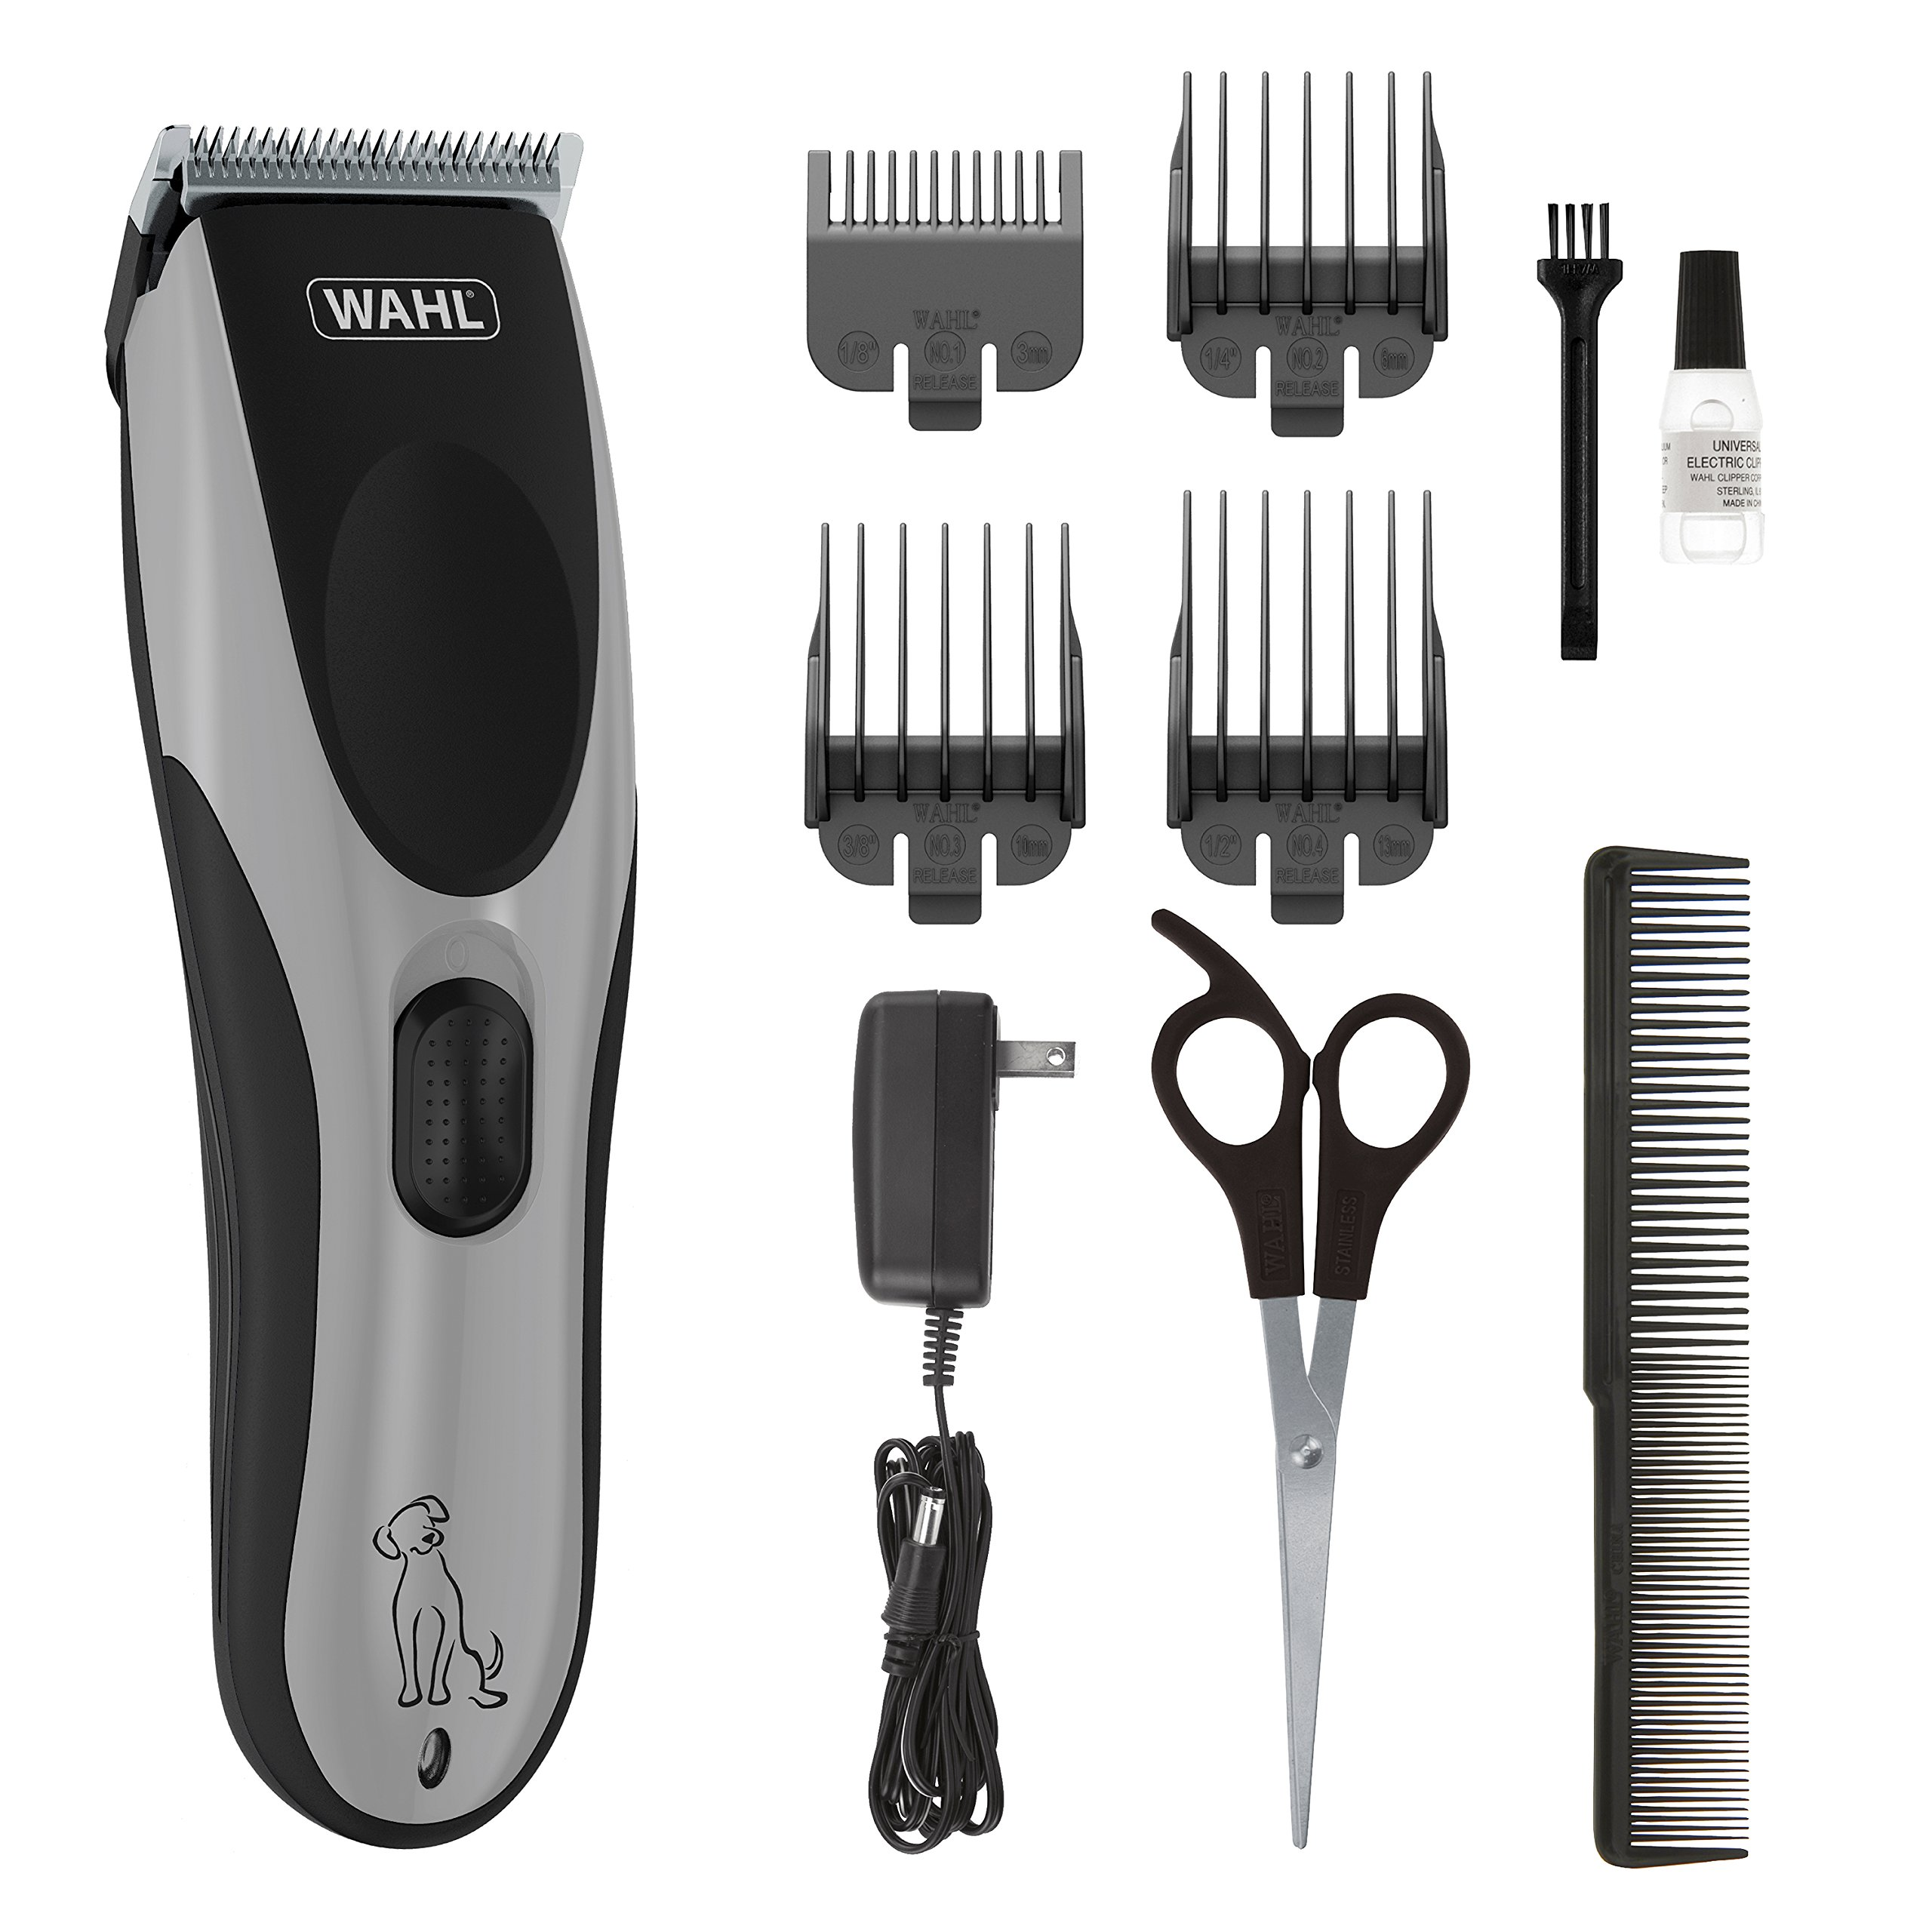 Wahl Easy Pro Pet Rechargeable Dog Grooming Kit - Quiet Low Noise Heavy-Duty Electric Dog Clipper for Dogs & Cats with Thick & Heavy Coats - Model 9549 by WAHL